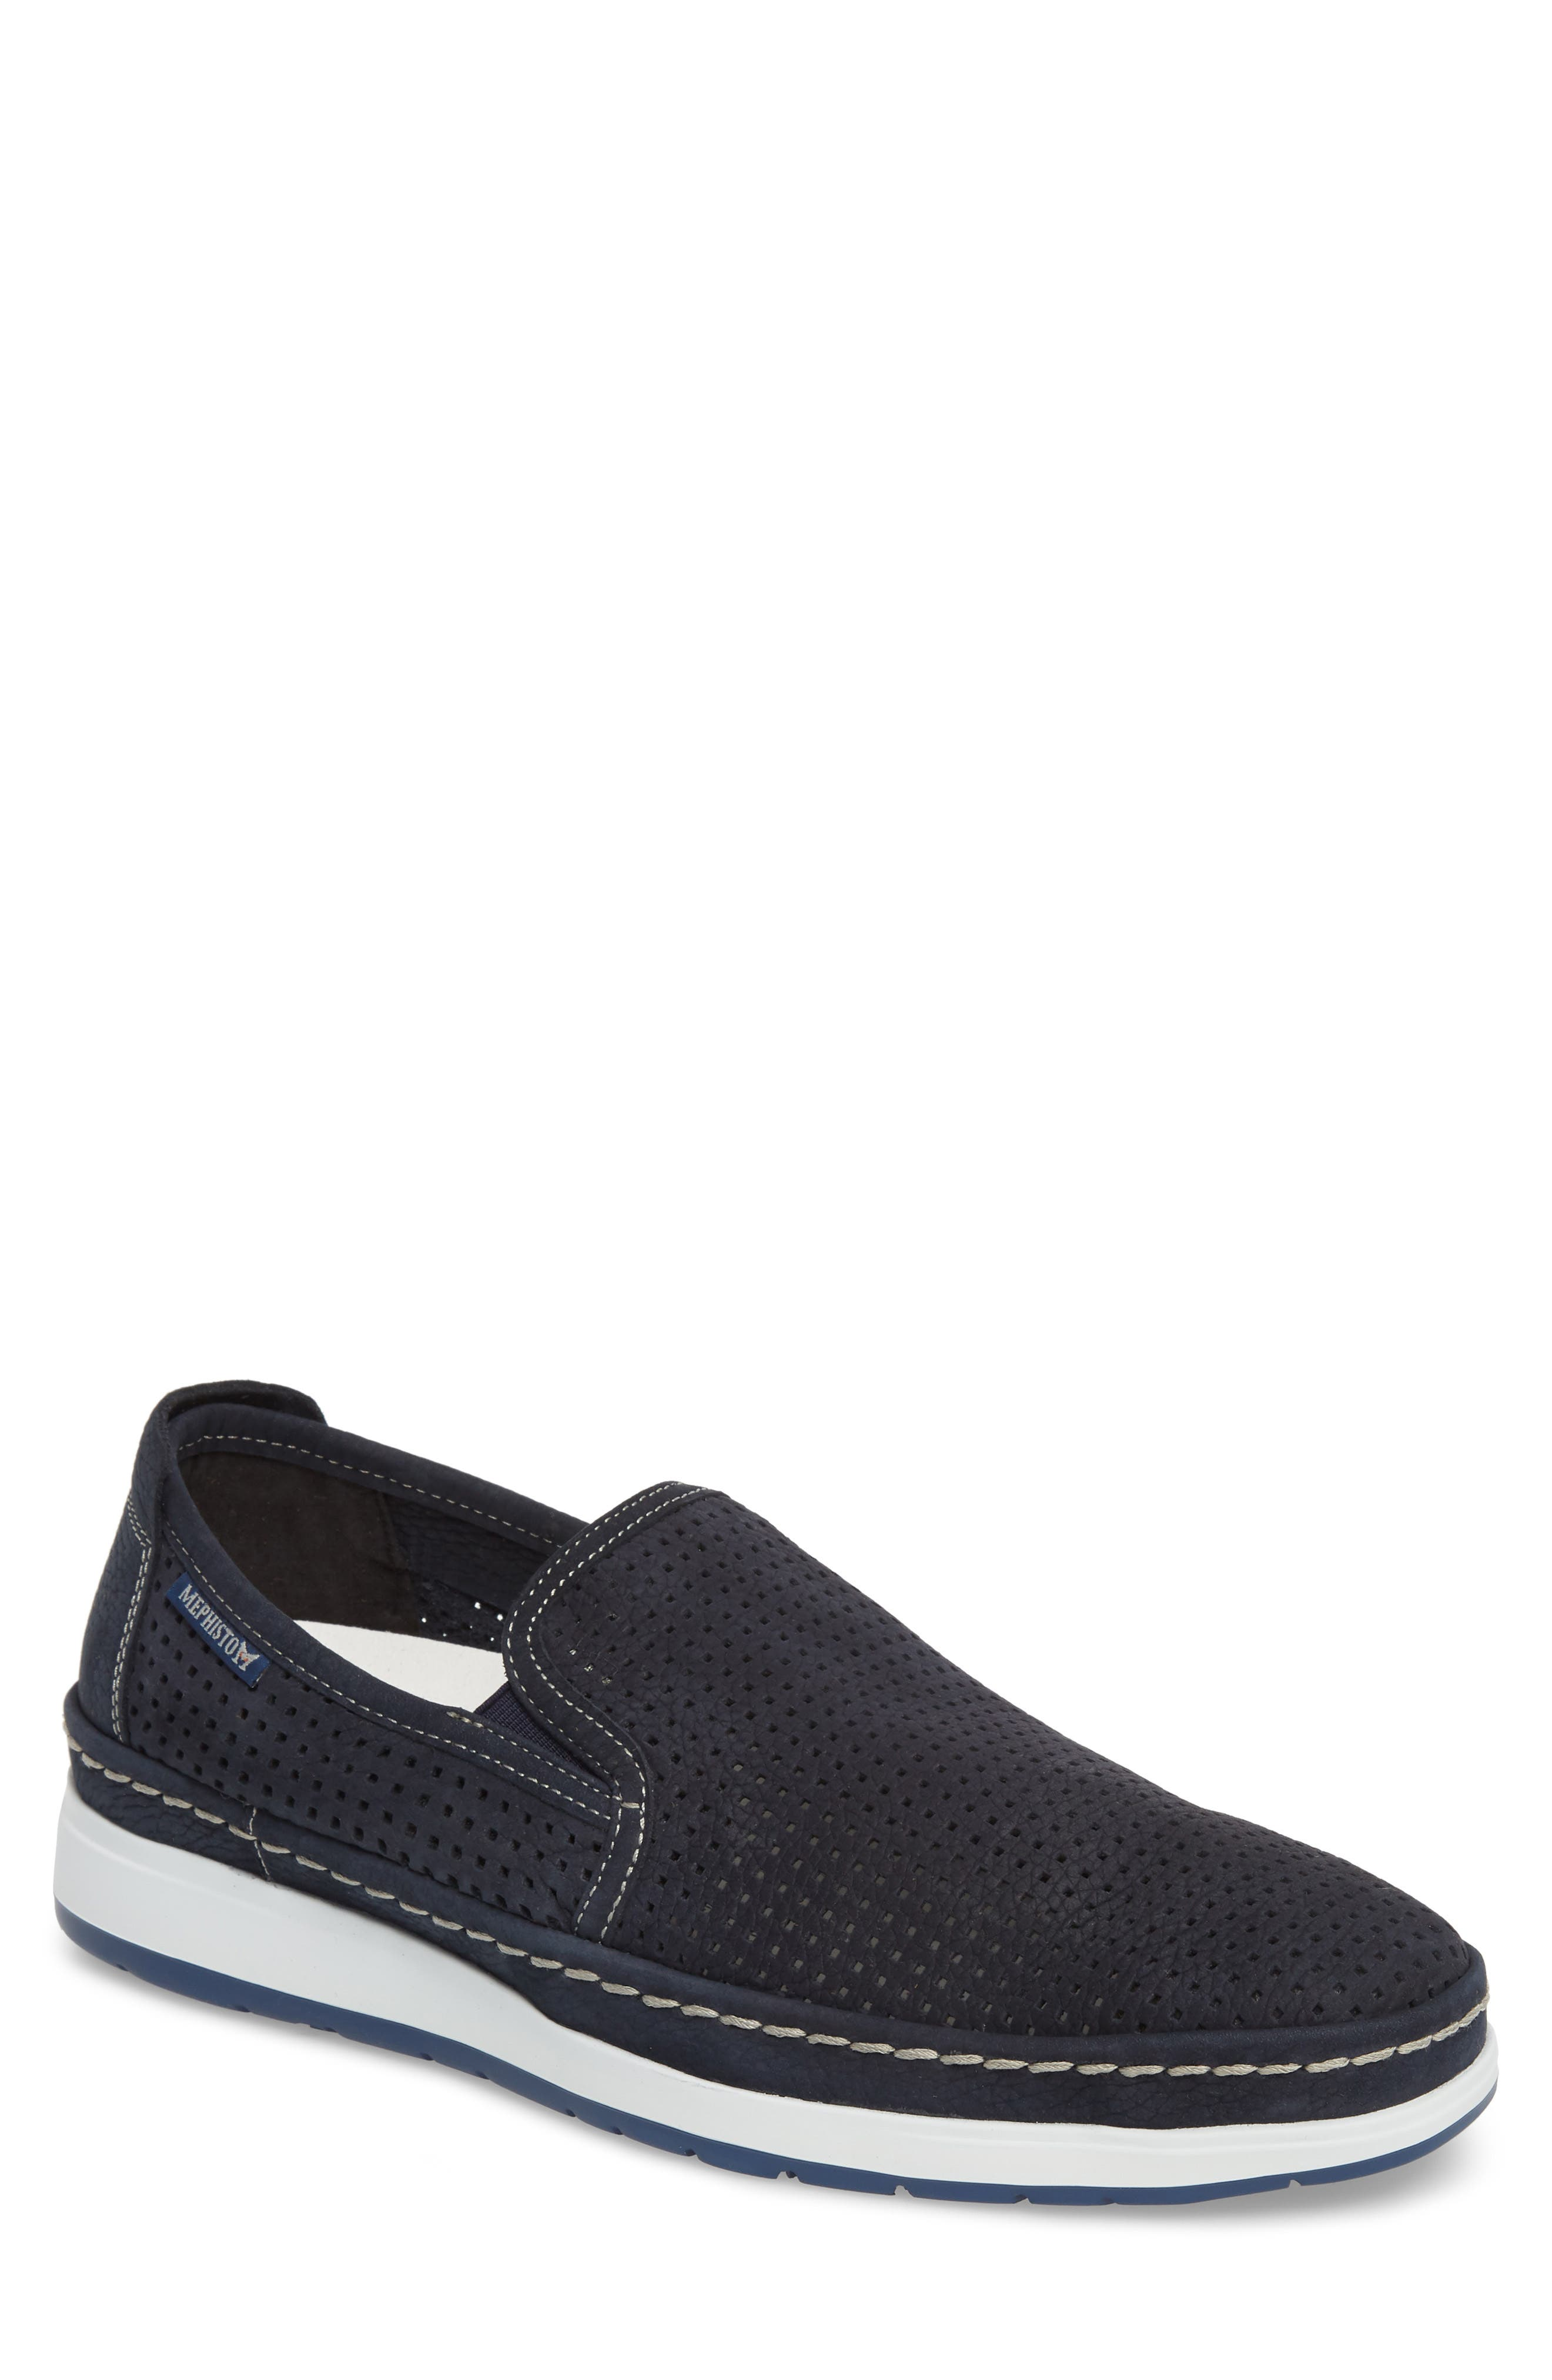 Hadrian Perforated Slip-On,                         Main,                         color, Navy